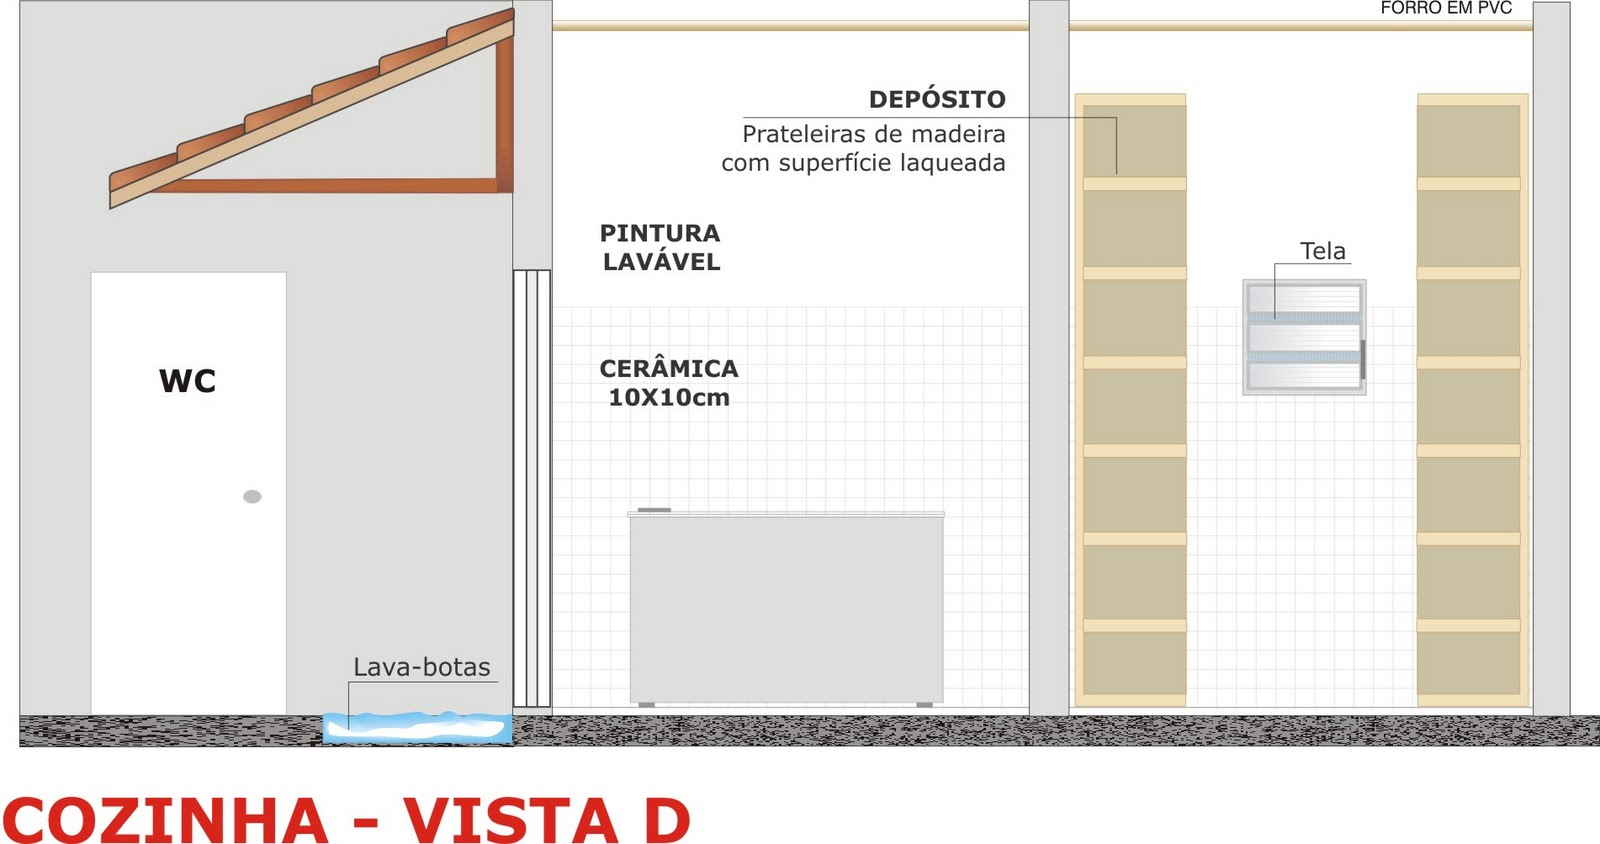 Pin Layout Restaurante Industrial on Pinterest #B41E17 1600 844